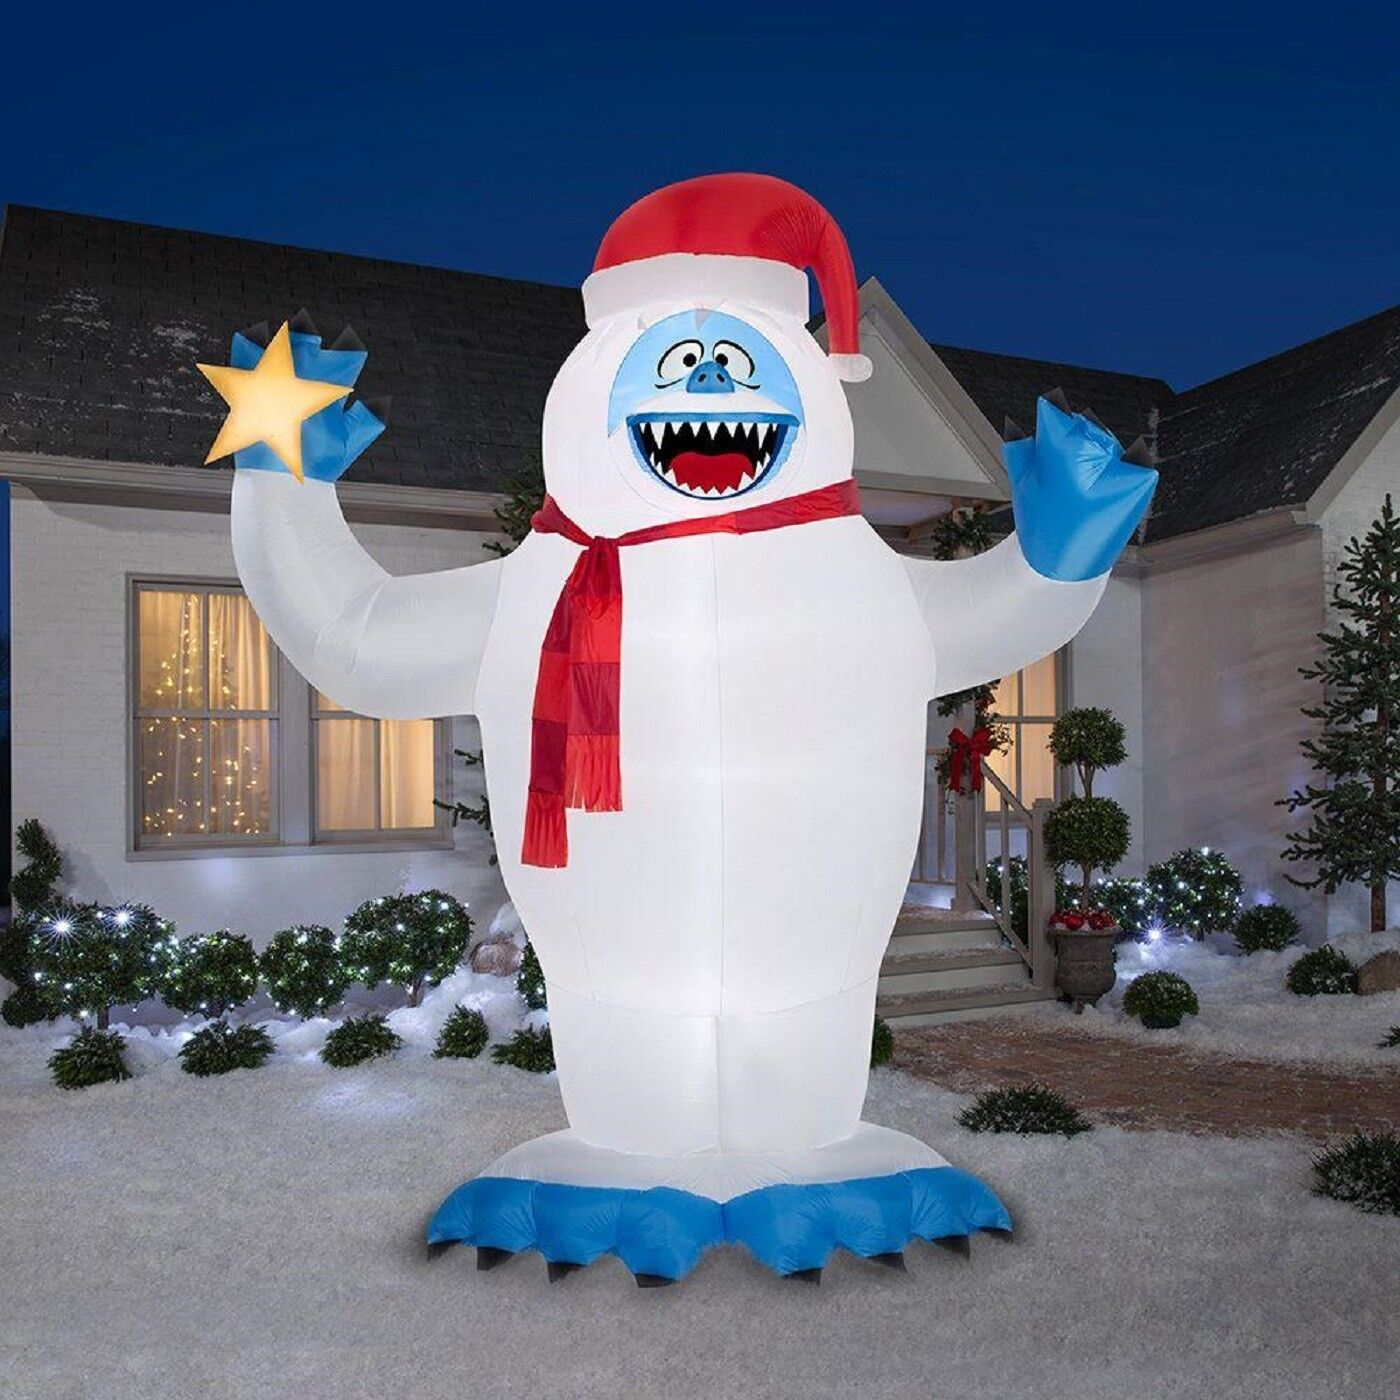 Christmas Inflatable Colossal 12' Bumble With Santa Hat Holding Star